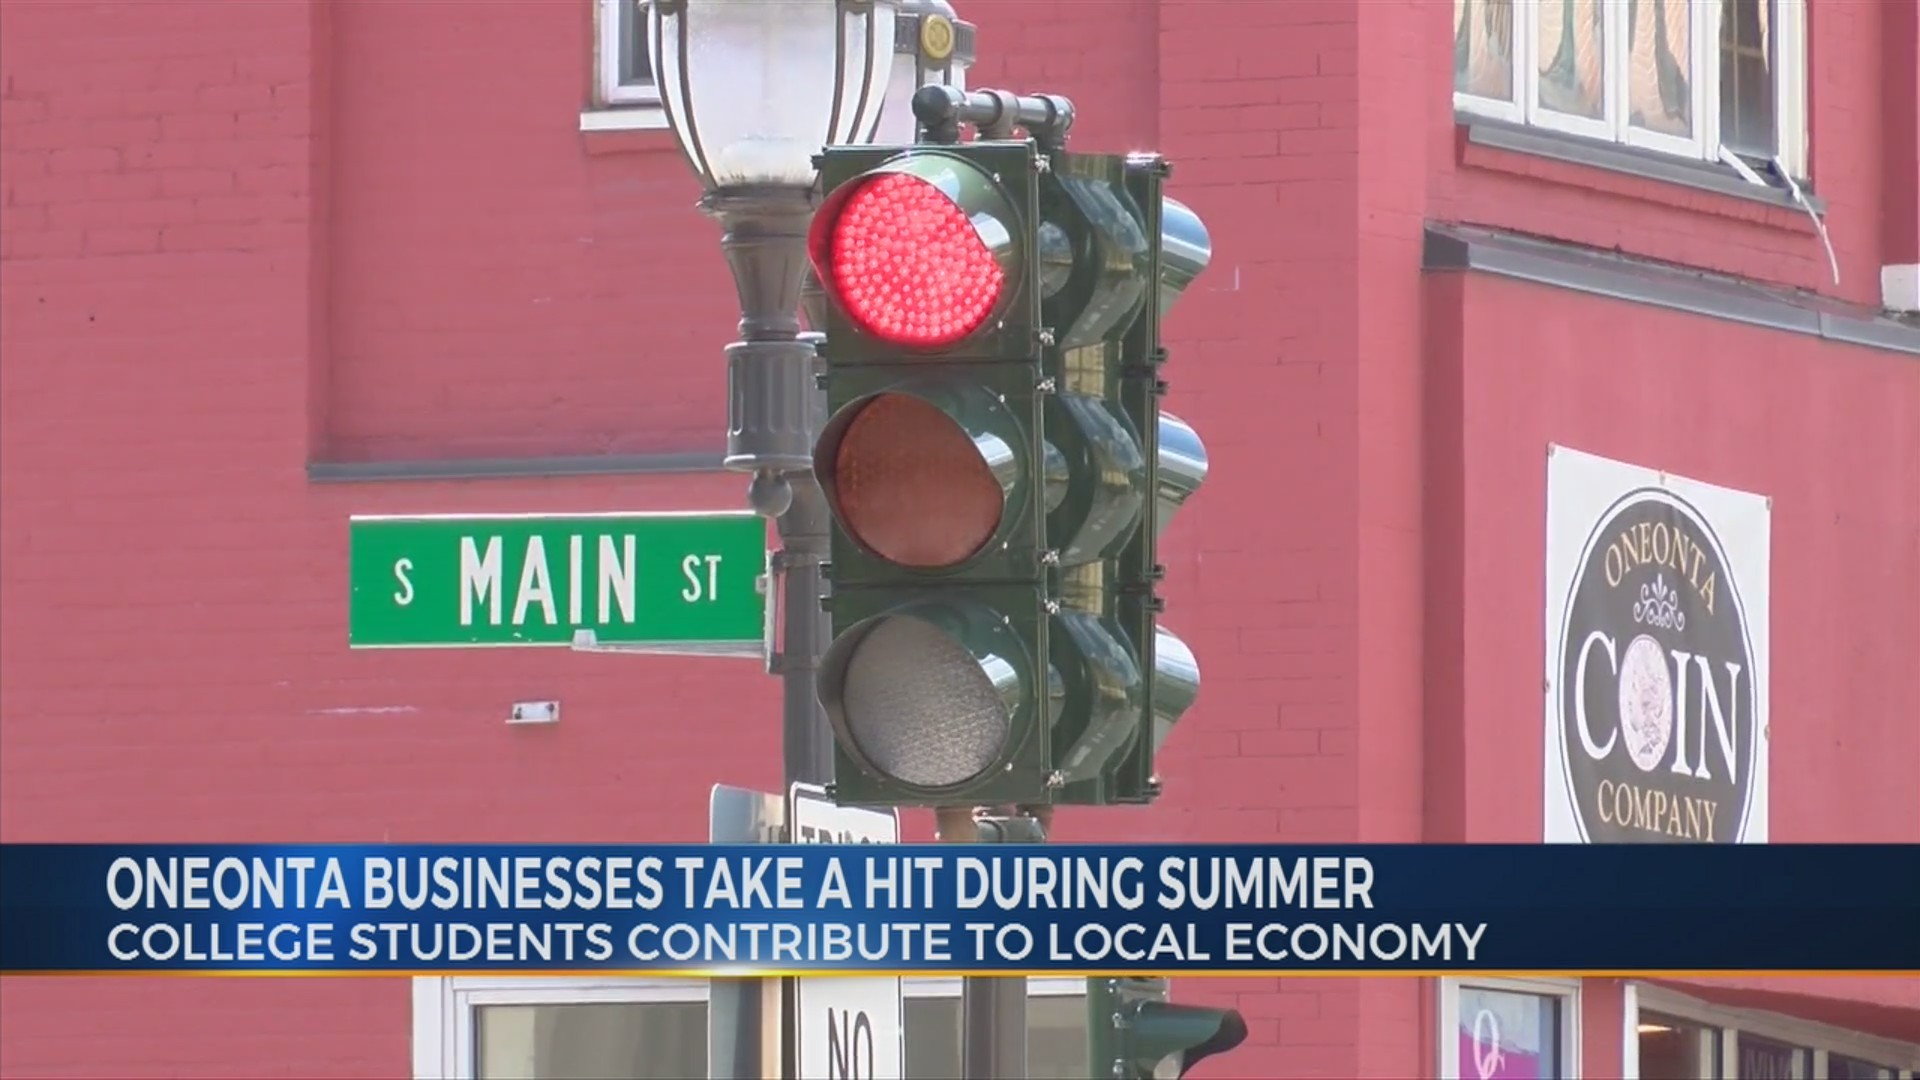 Oneonta Businesses Take Hit During Summer